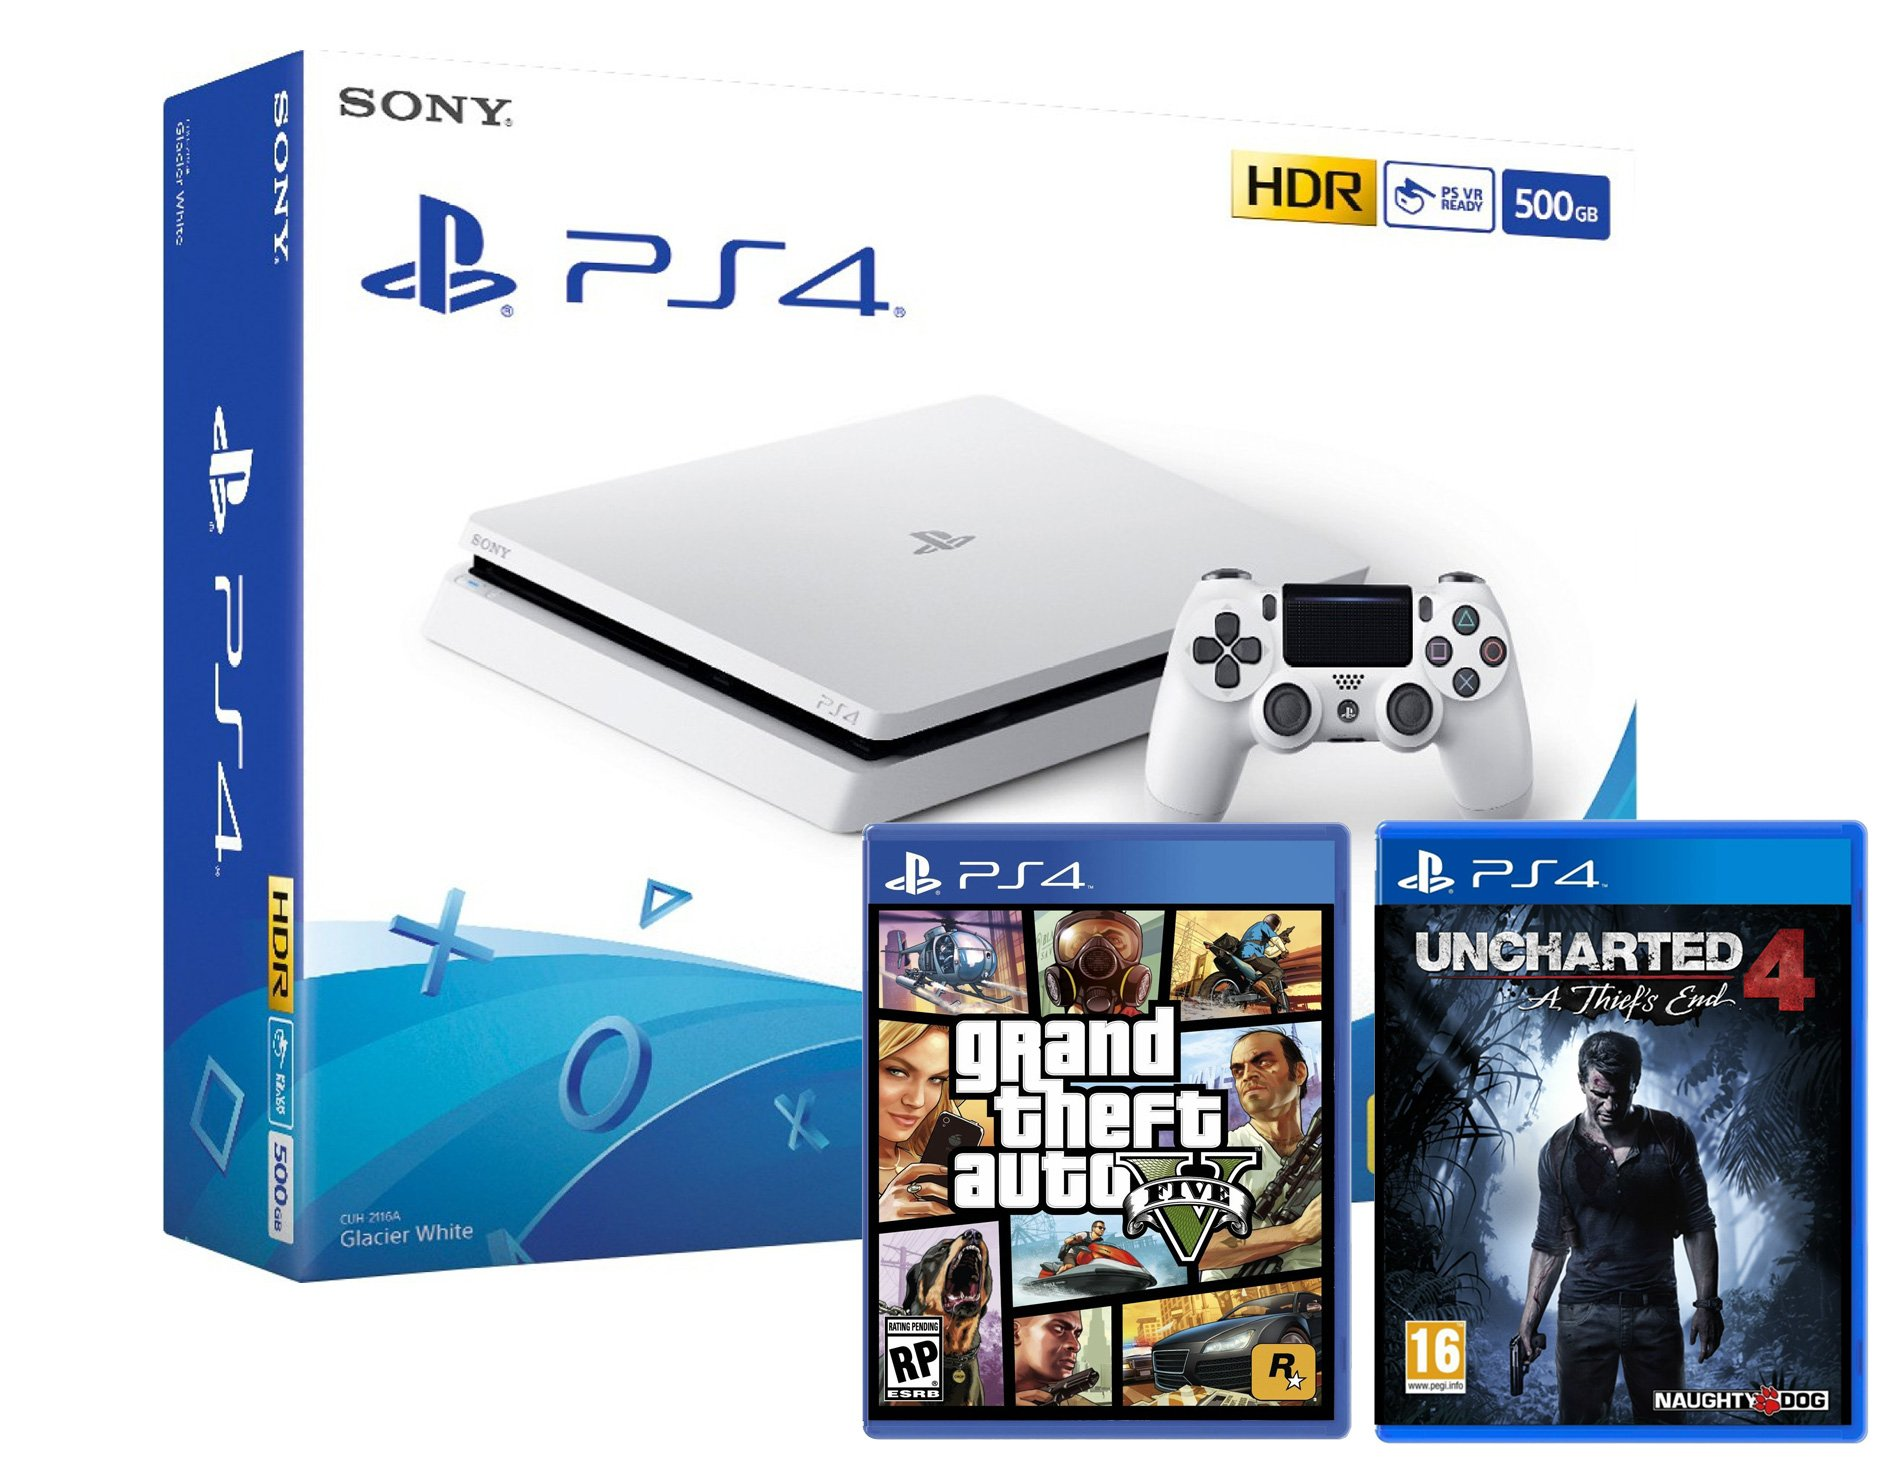 PS4 Slim 500 Go blanca Playstation 4 + Uncharted 4: A thief s End + GTA V Grand Theft Auto 5